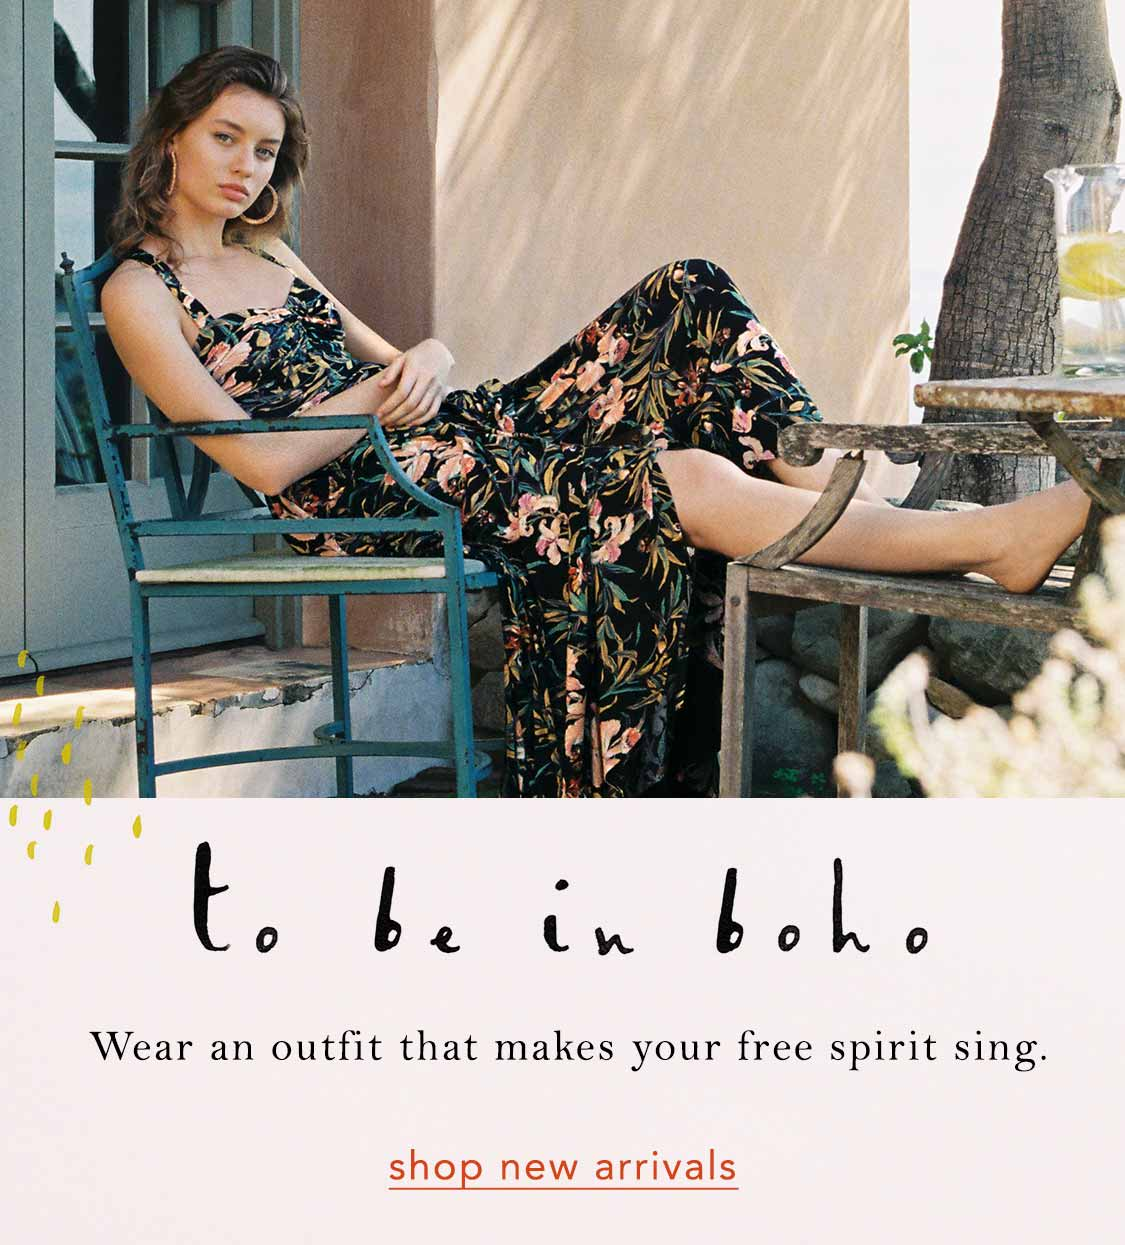 04b6f258d3c4 Anthropologie - Women's Clothing, Accessories & Home